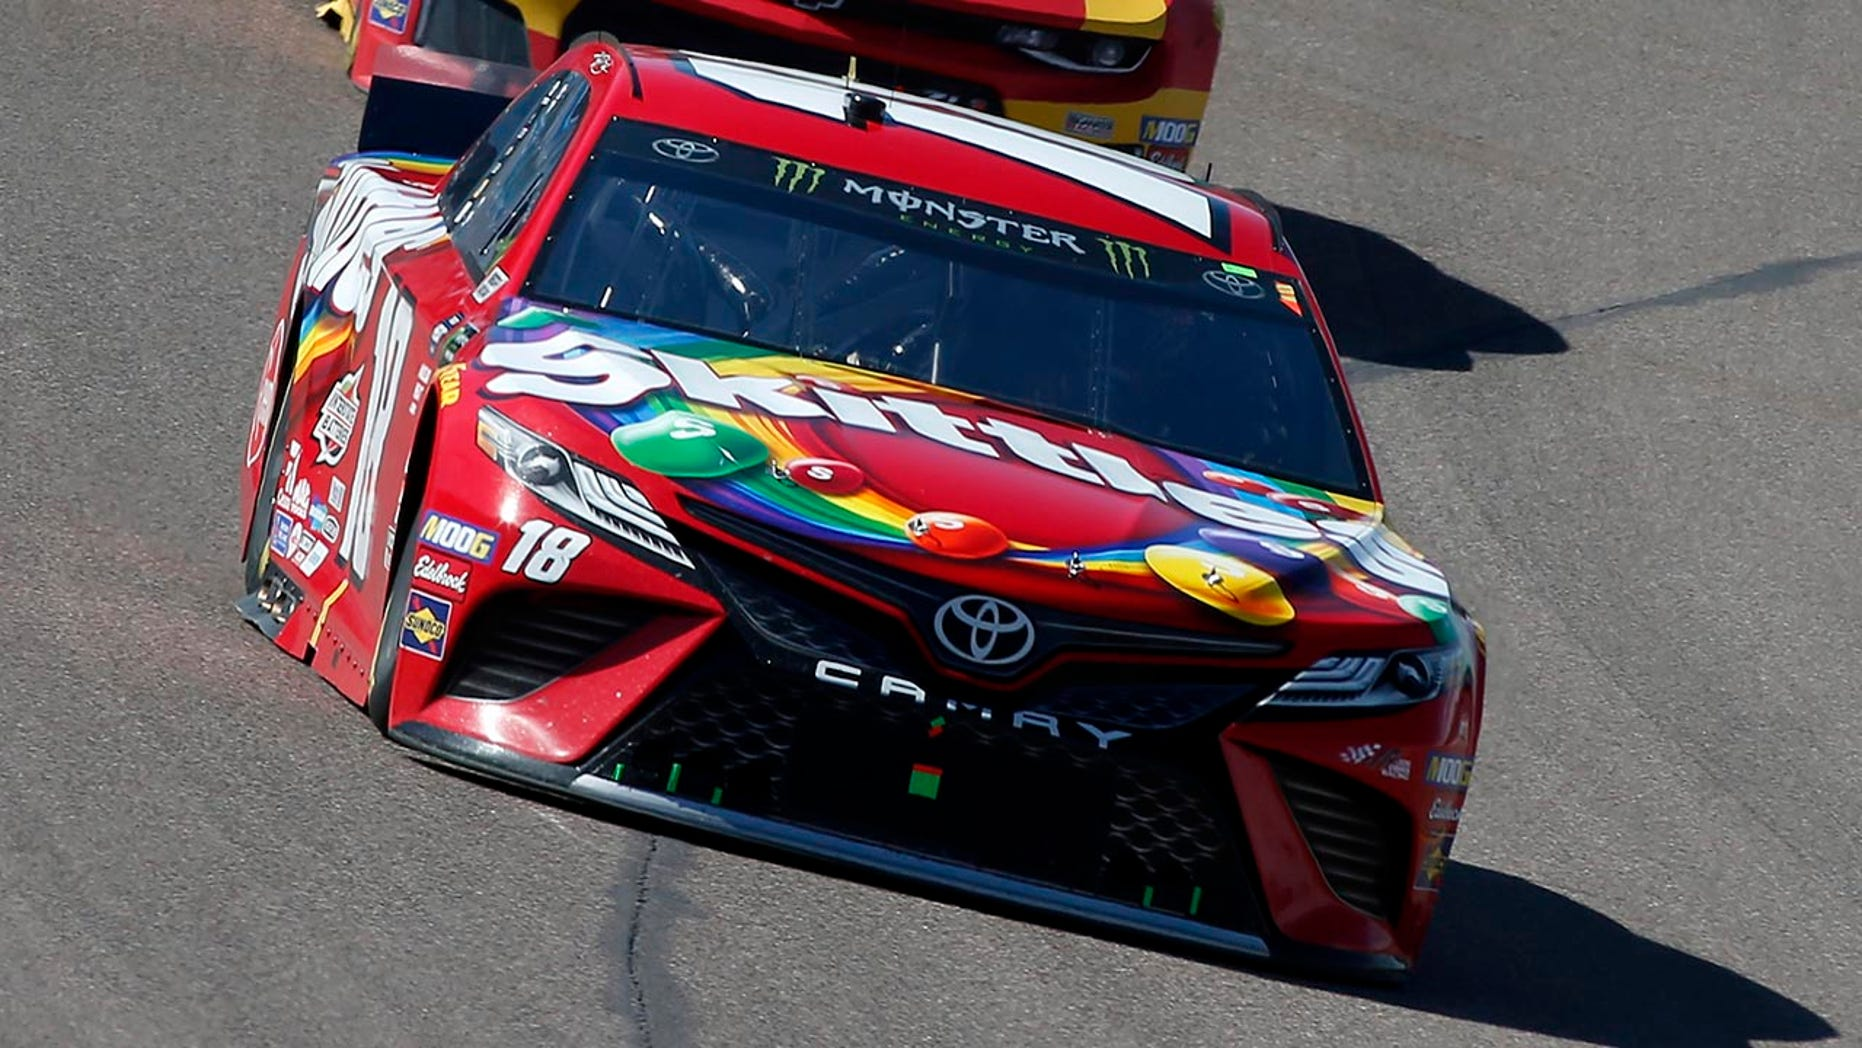 Kyle Busch (18) drives out of Turn 4 during the NASCAR Cup Series auto race at ISM Raceway, Sunday, March 10, 2019, in Avondale, Ariz. (AP Photo/Ralph Freso)